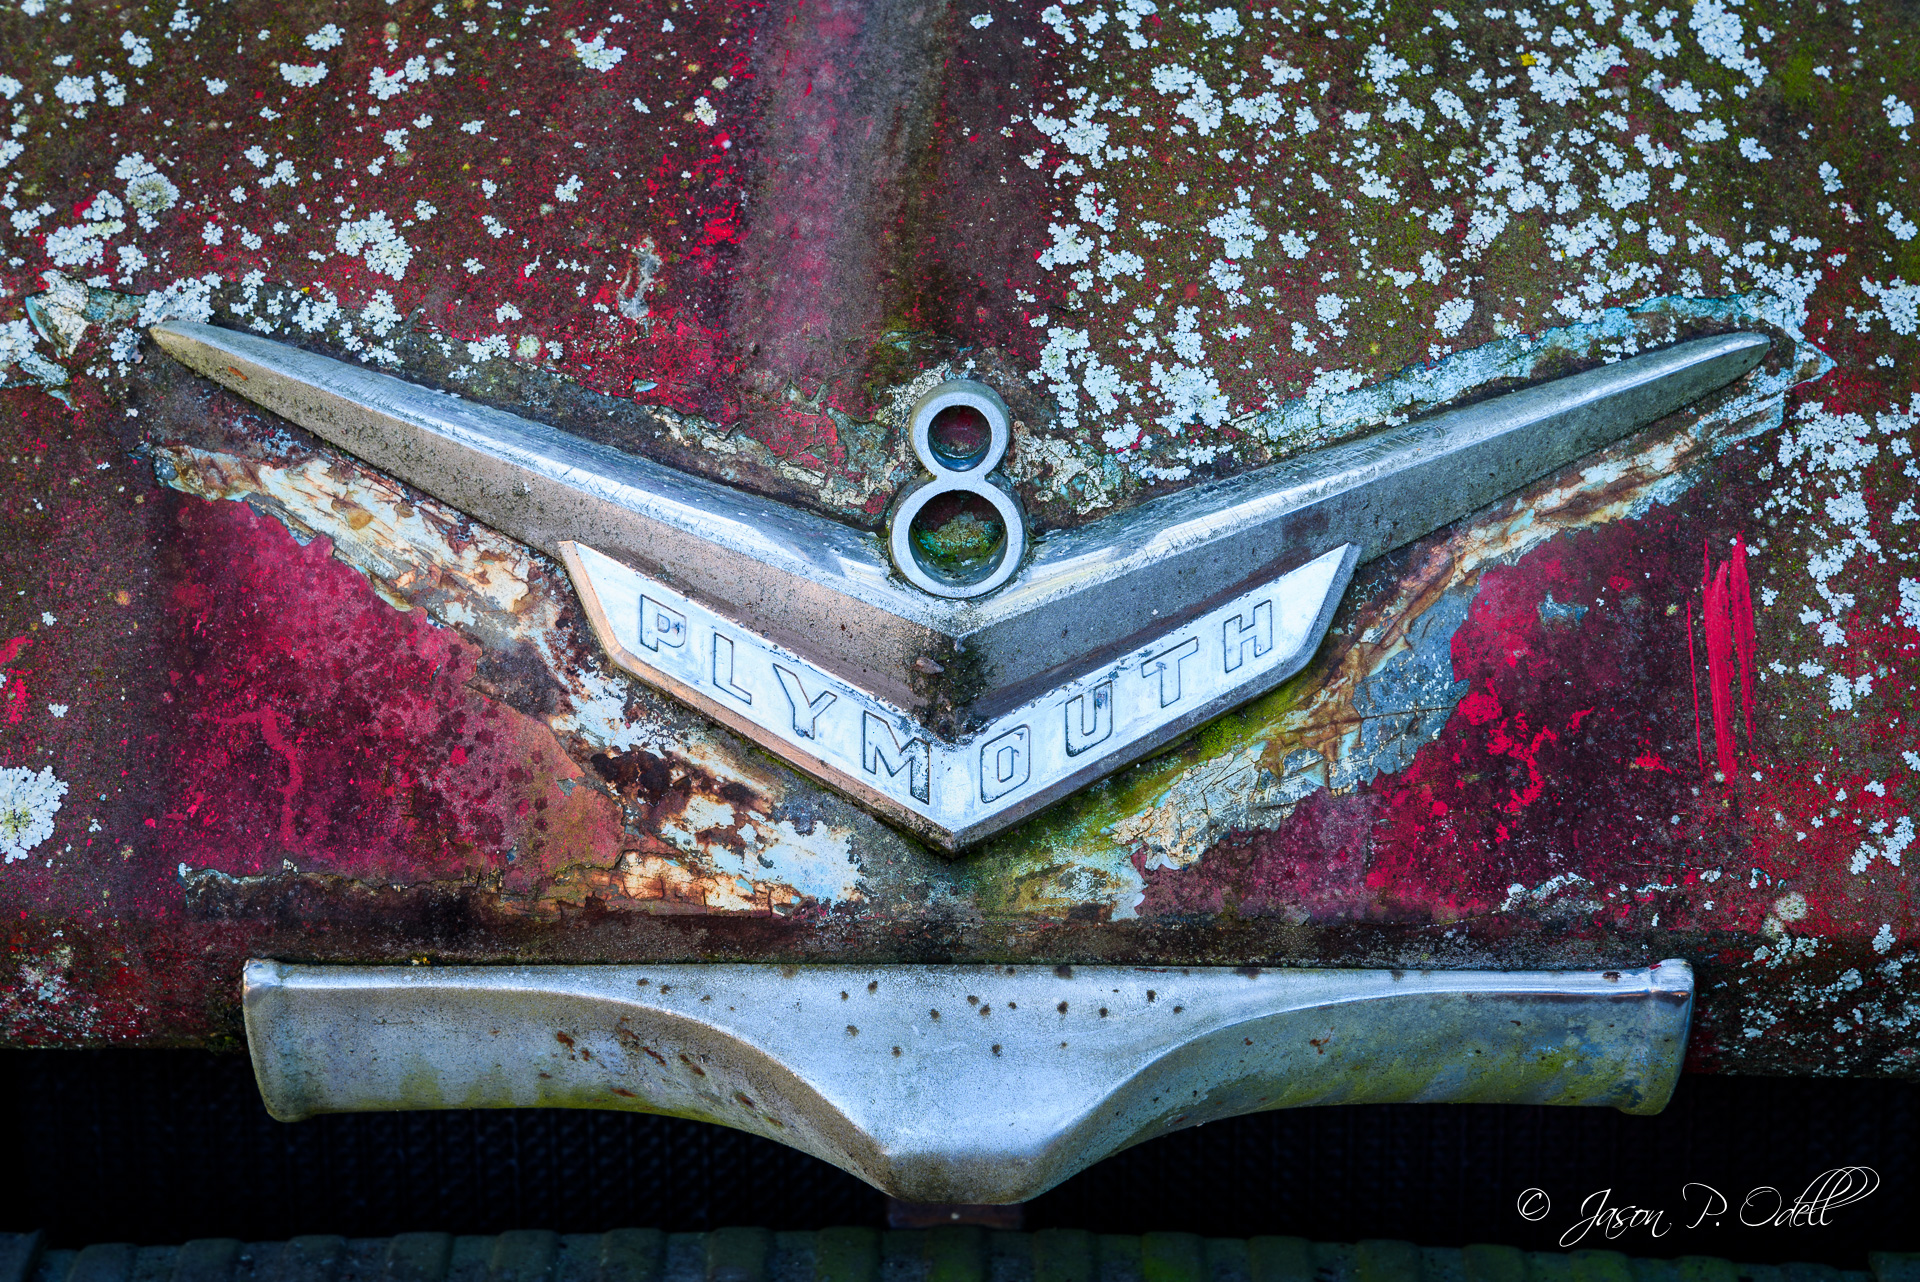 Join me at Old Car City USA March 11-12 for a creative photography workshop!